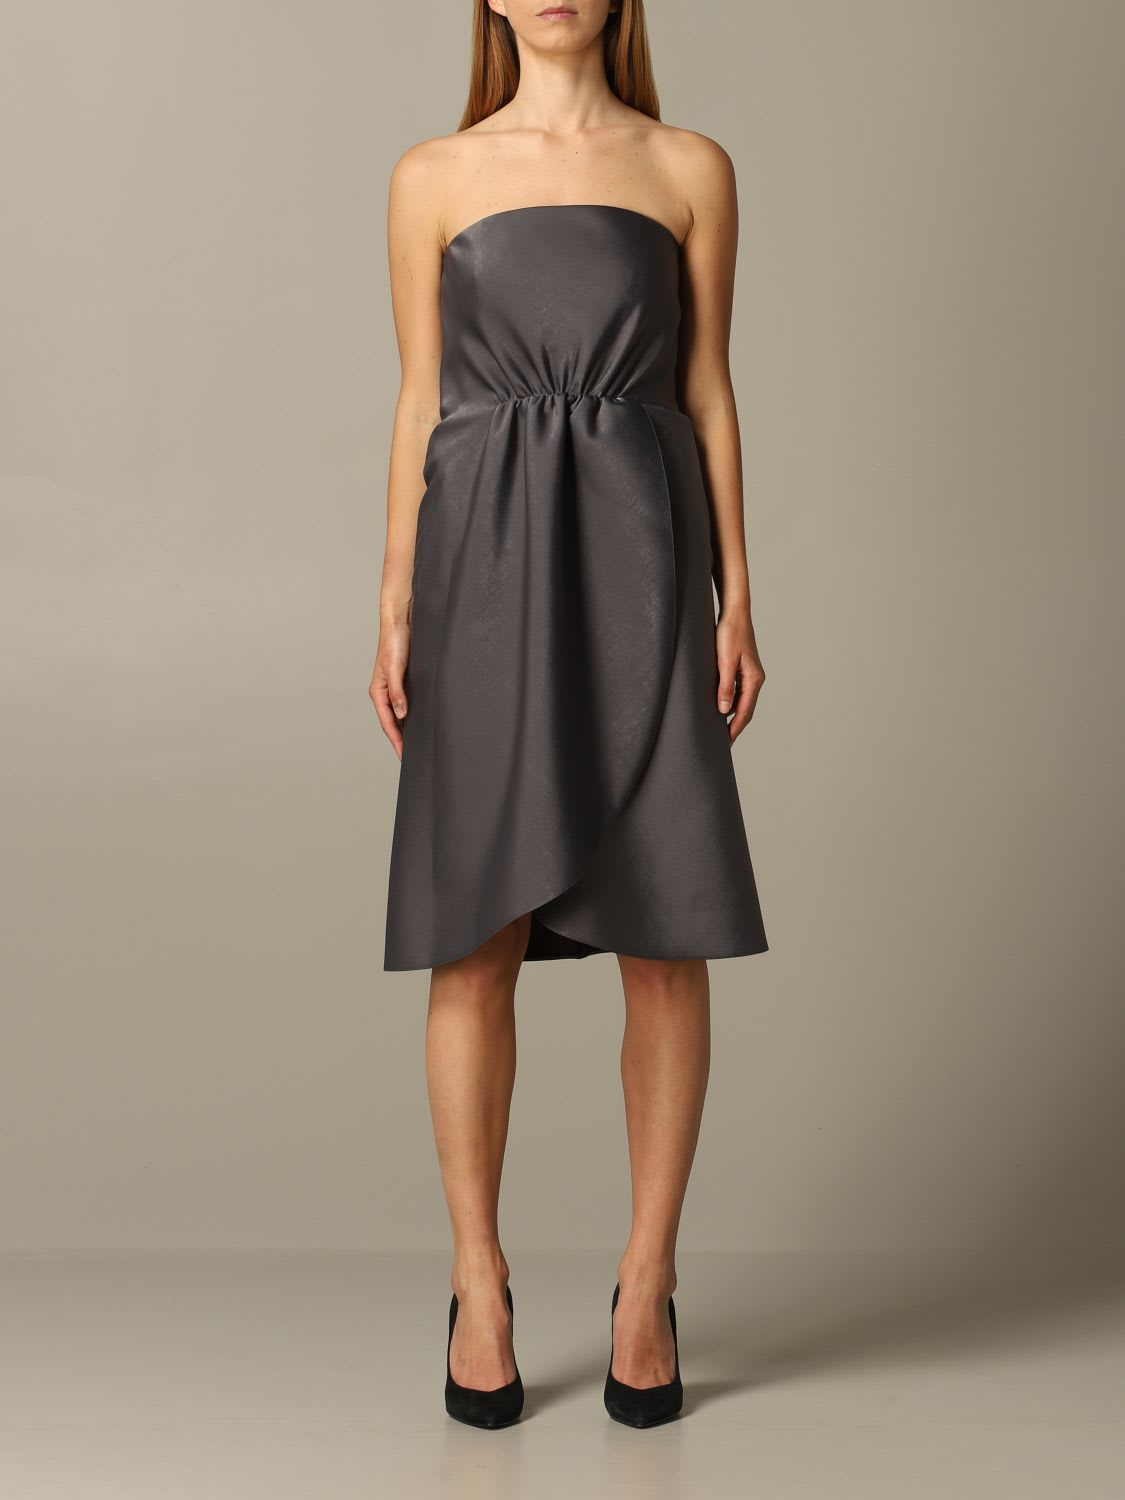 Buy Giorgio Armani Dress Dress Women Giorgio Armani online, shop Giorgio Armani with free shipping